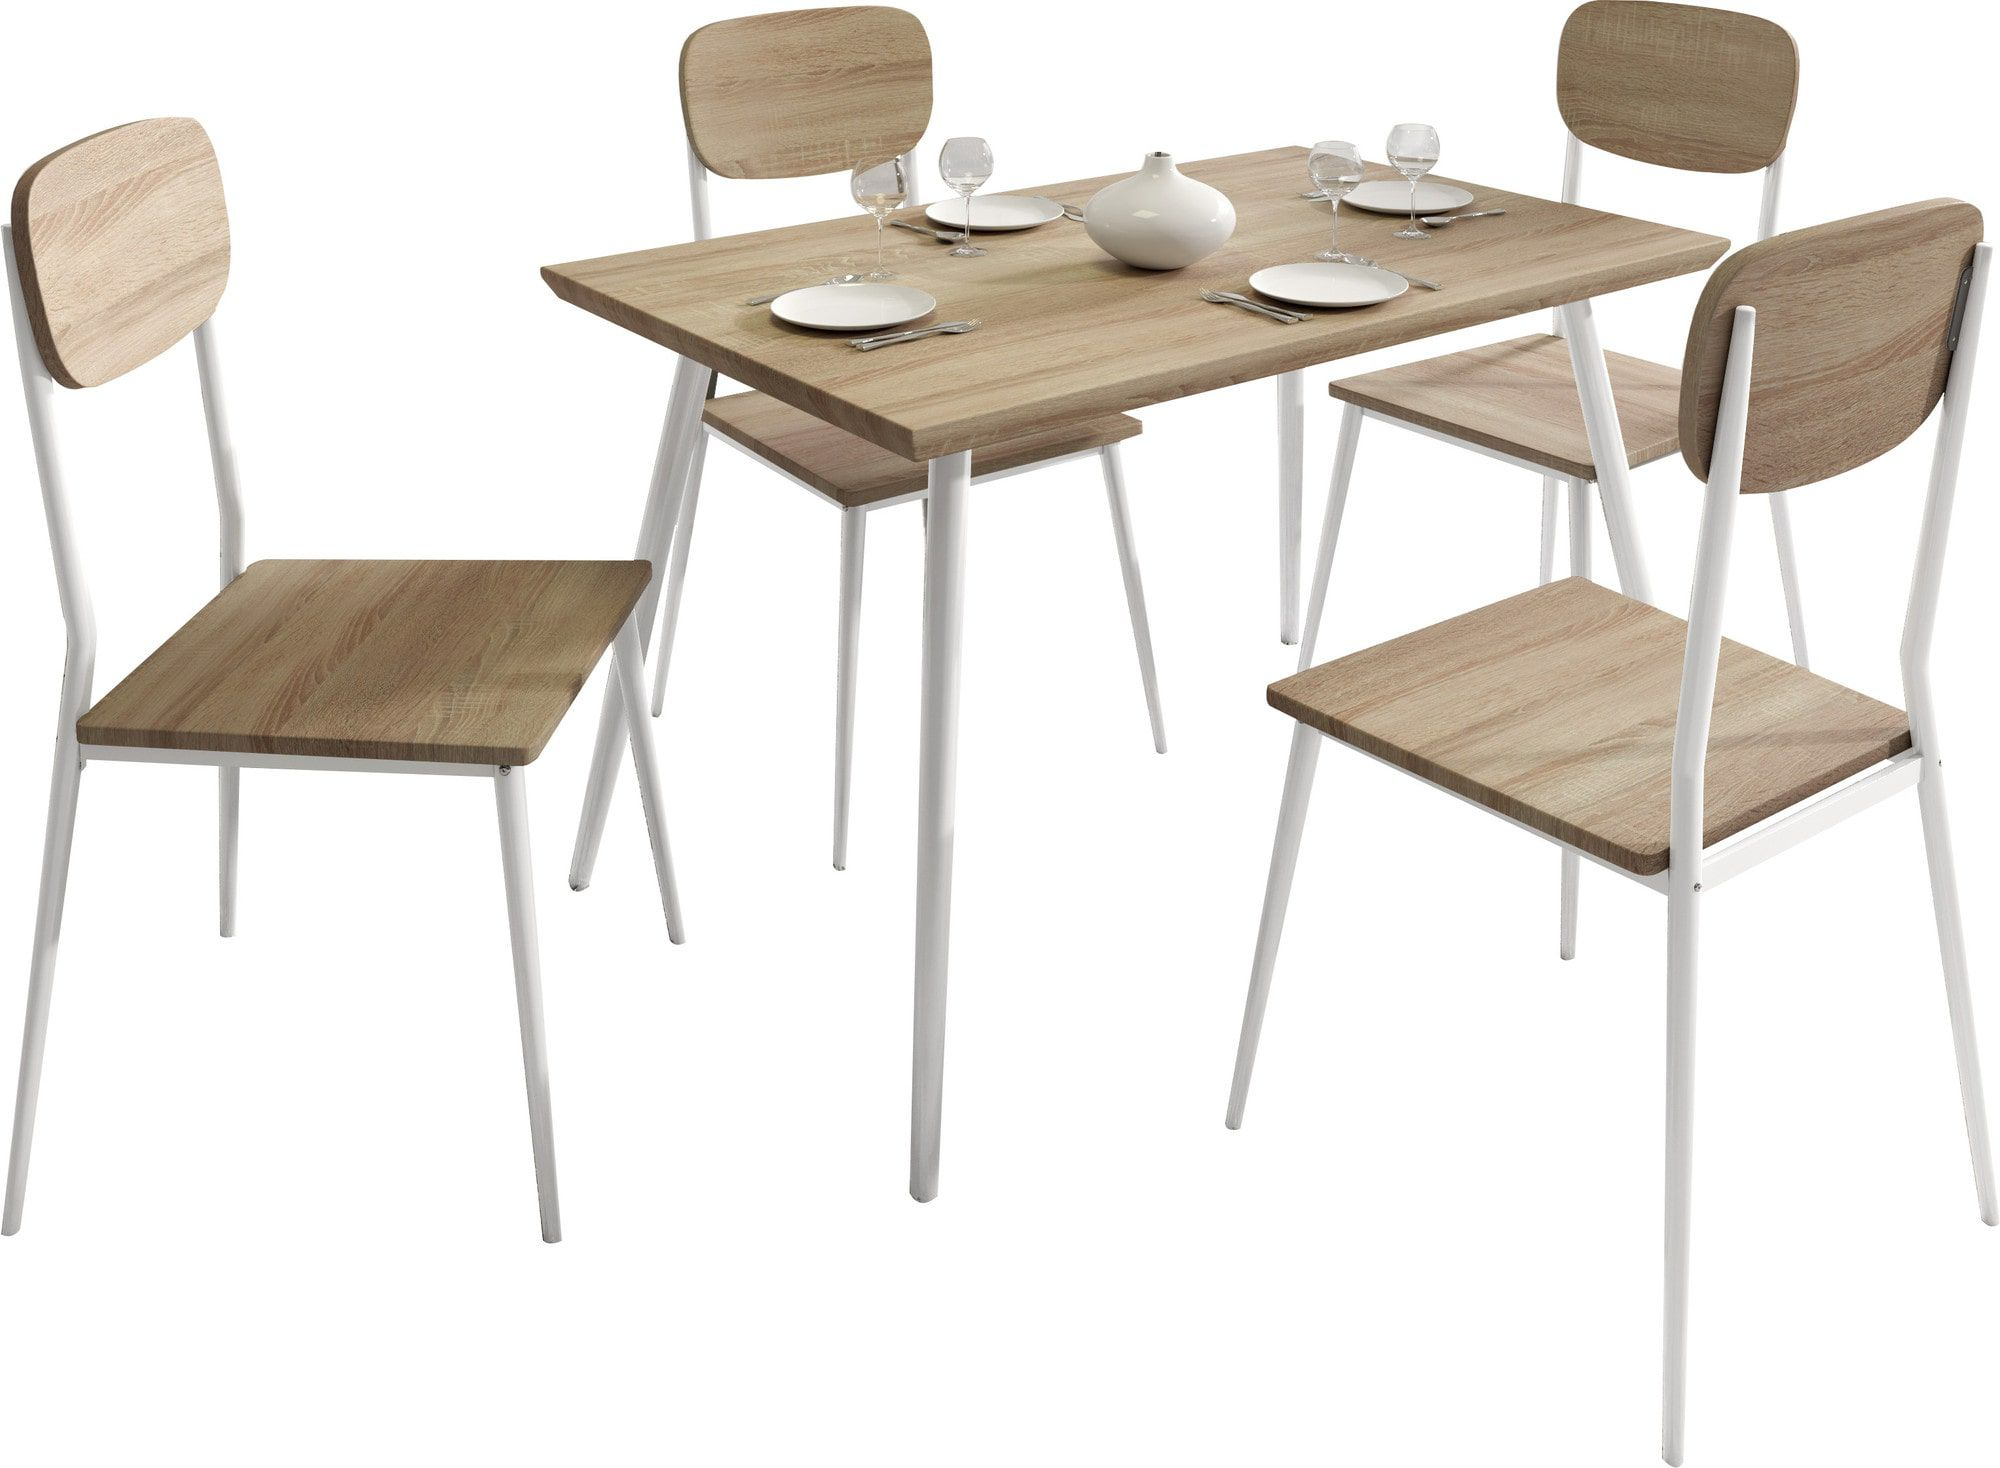 Comment assortir l ensemble table et chaise de sa salle for Ensemble table chaise design